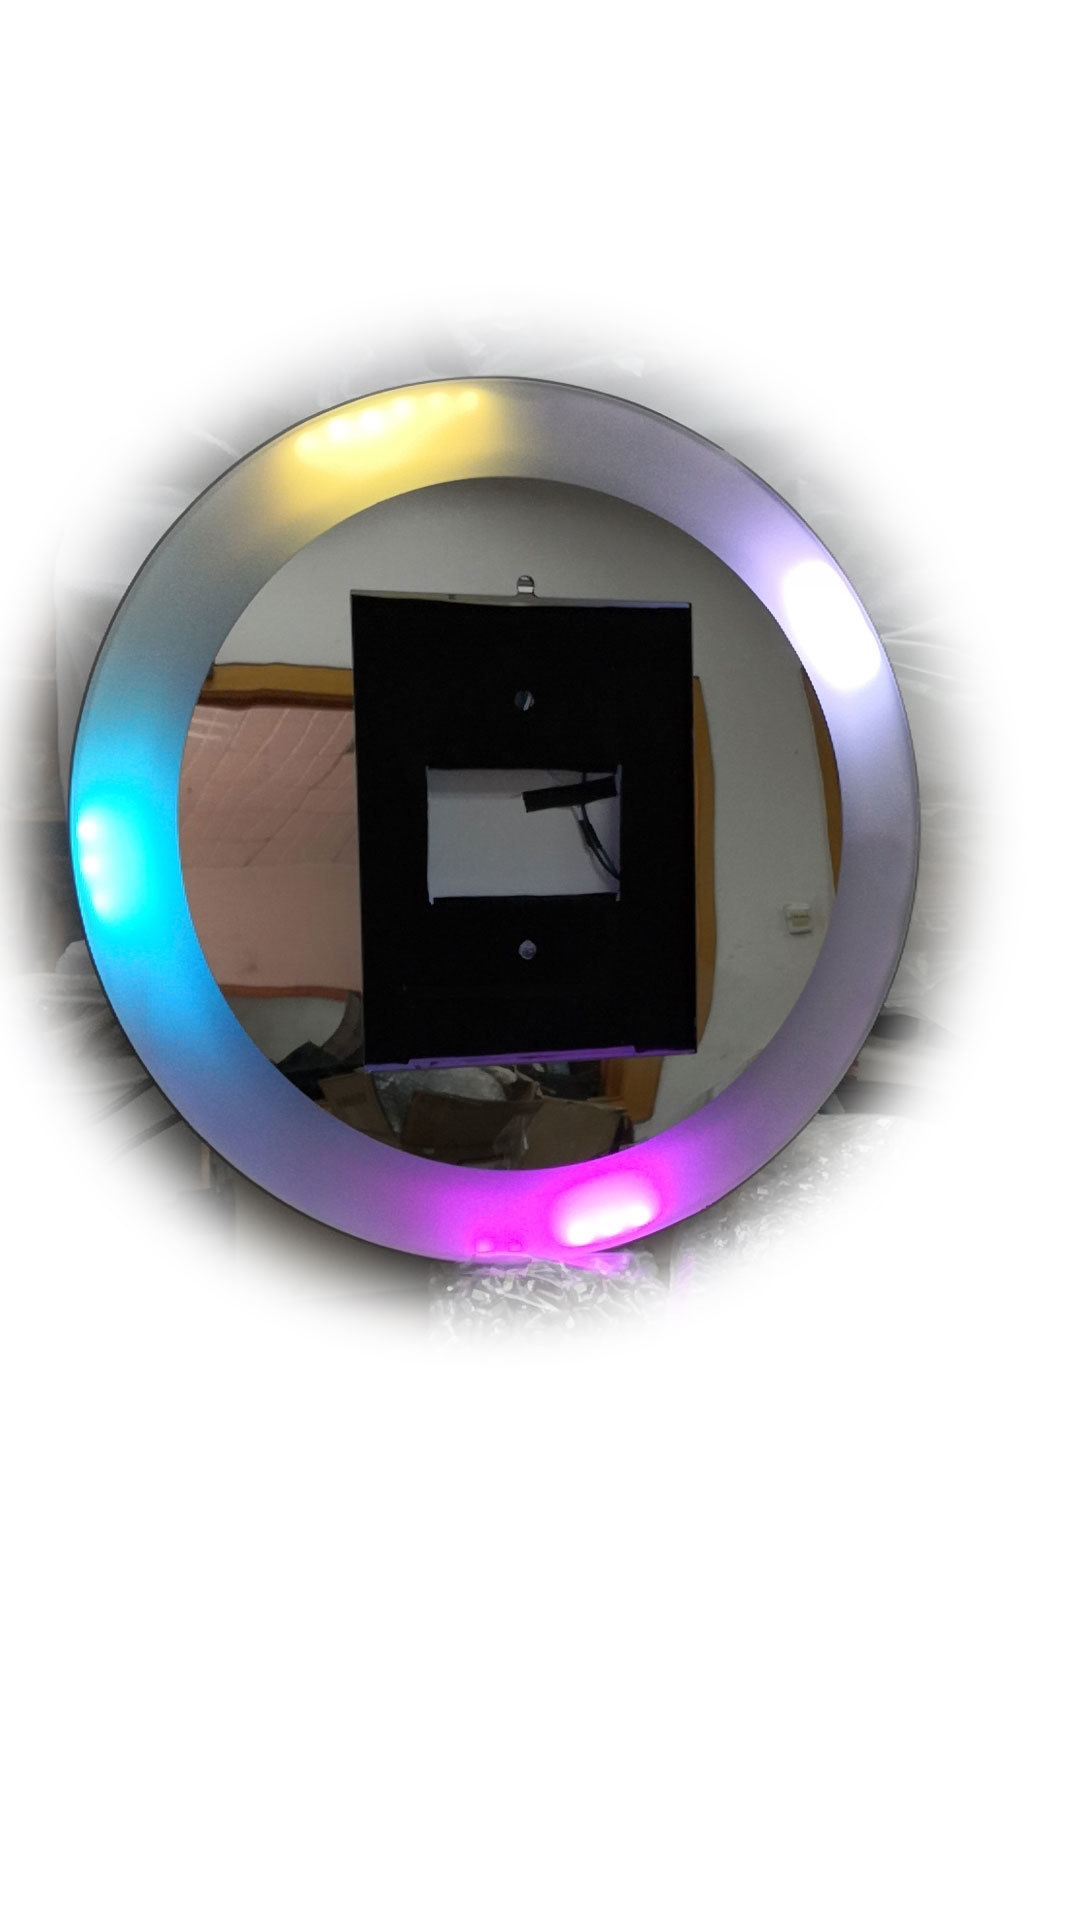 plastic ring light adjust 3200 to 6500 and RGB trip color music for ipad 10.5 photo booth roamer